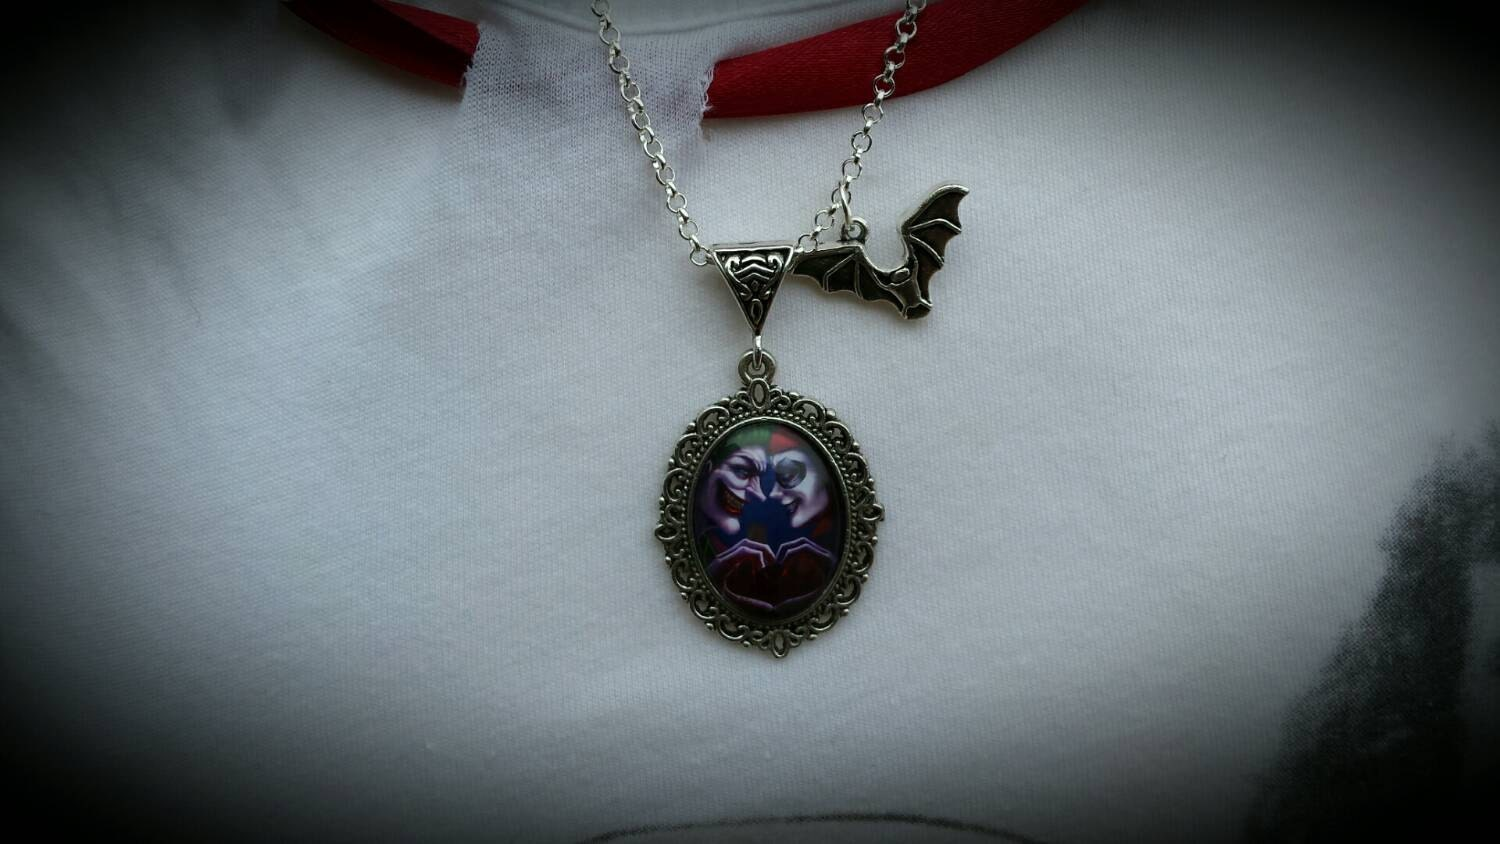 The joker and harley quinn vintage style necklace with tibetan for Harley quinn and joker jewelry